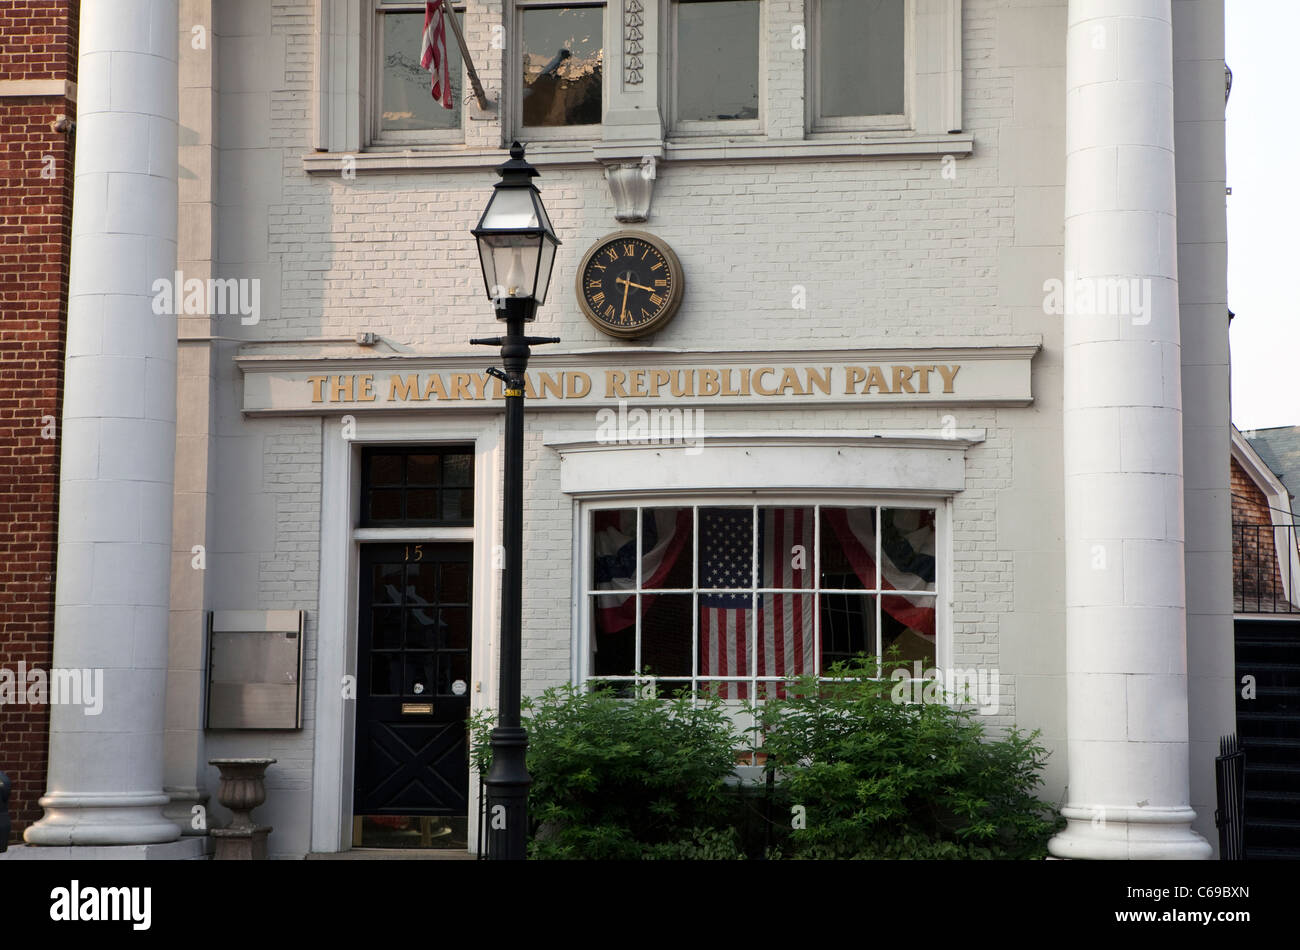 A view of the Republican Party headquarters in Annapolis, Maryland - Stock Image